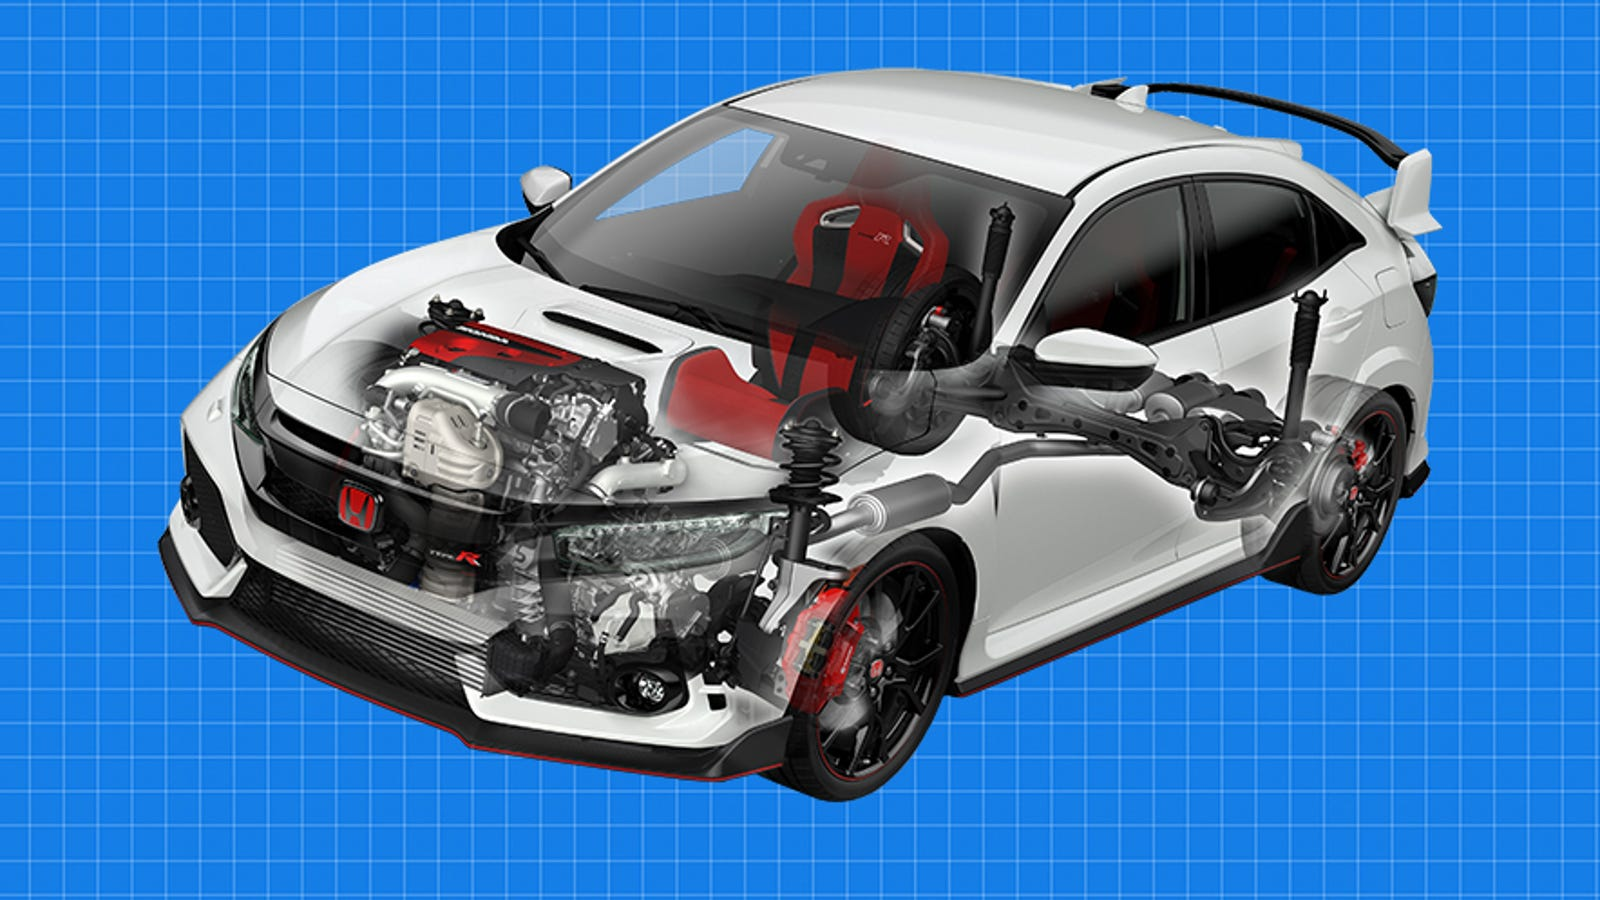 By The Numbers: 2017 Honda Civic Type R Vs Focus RS, WRX STI